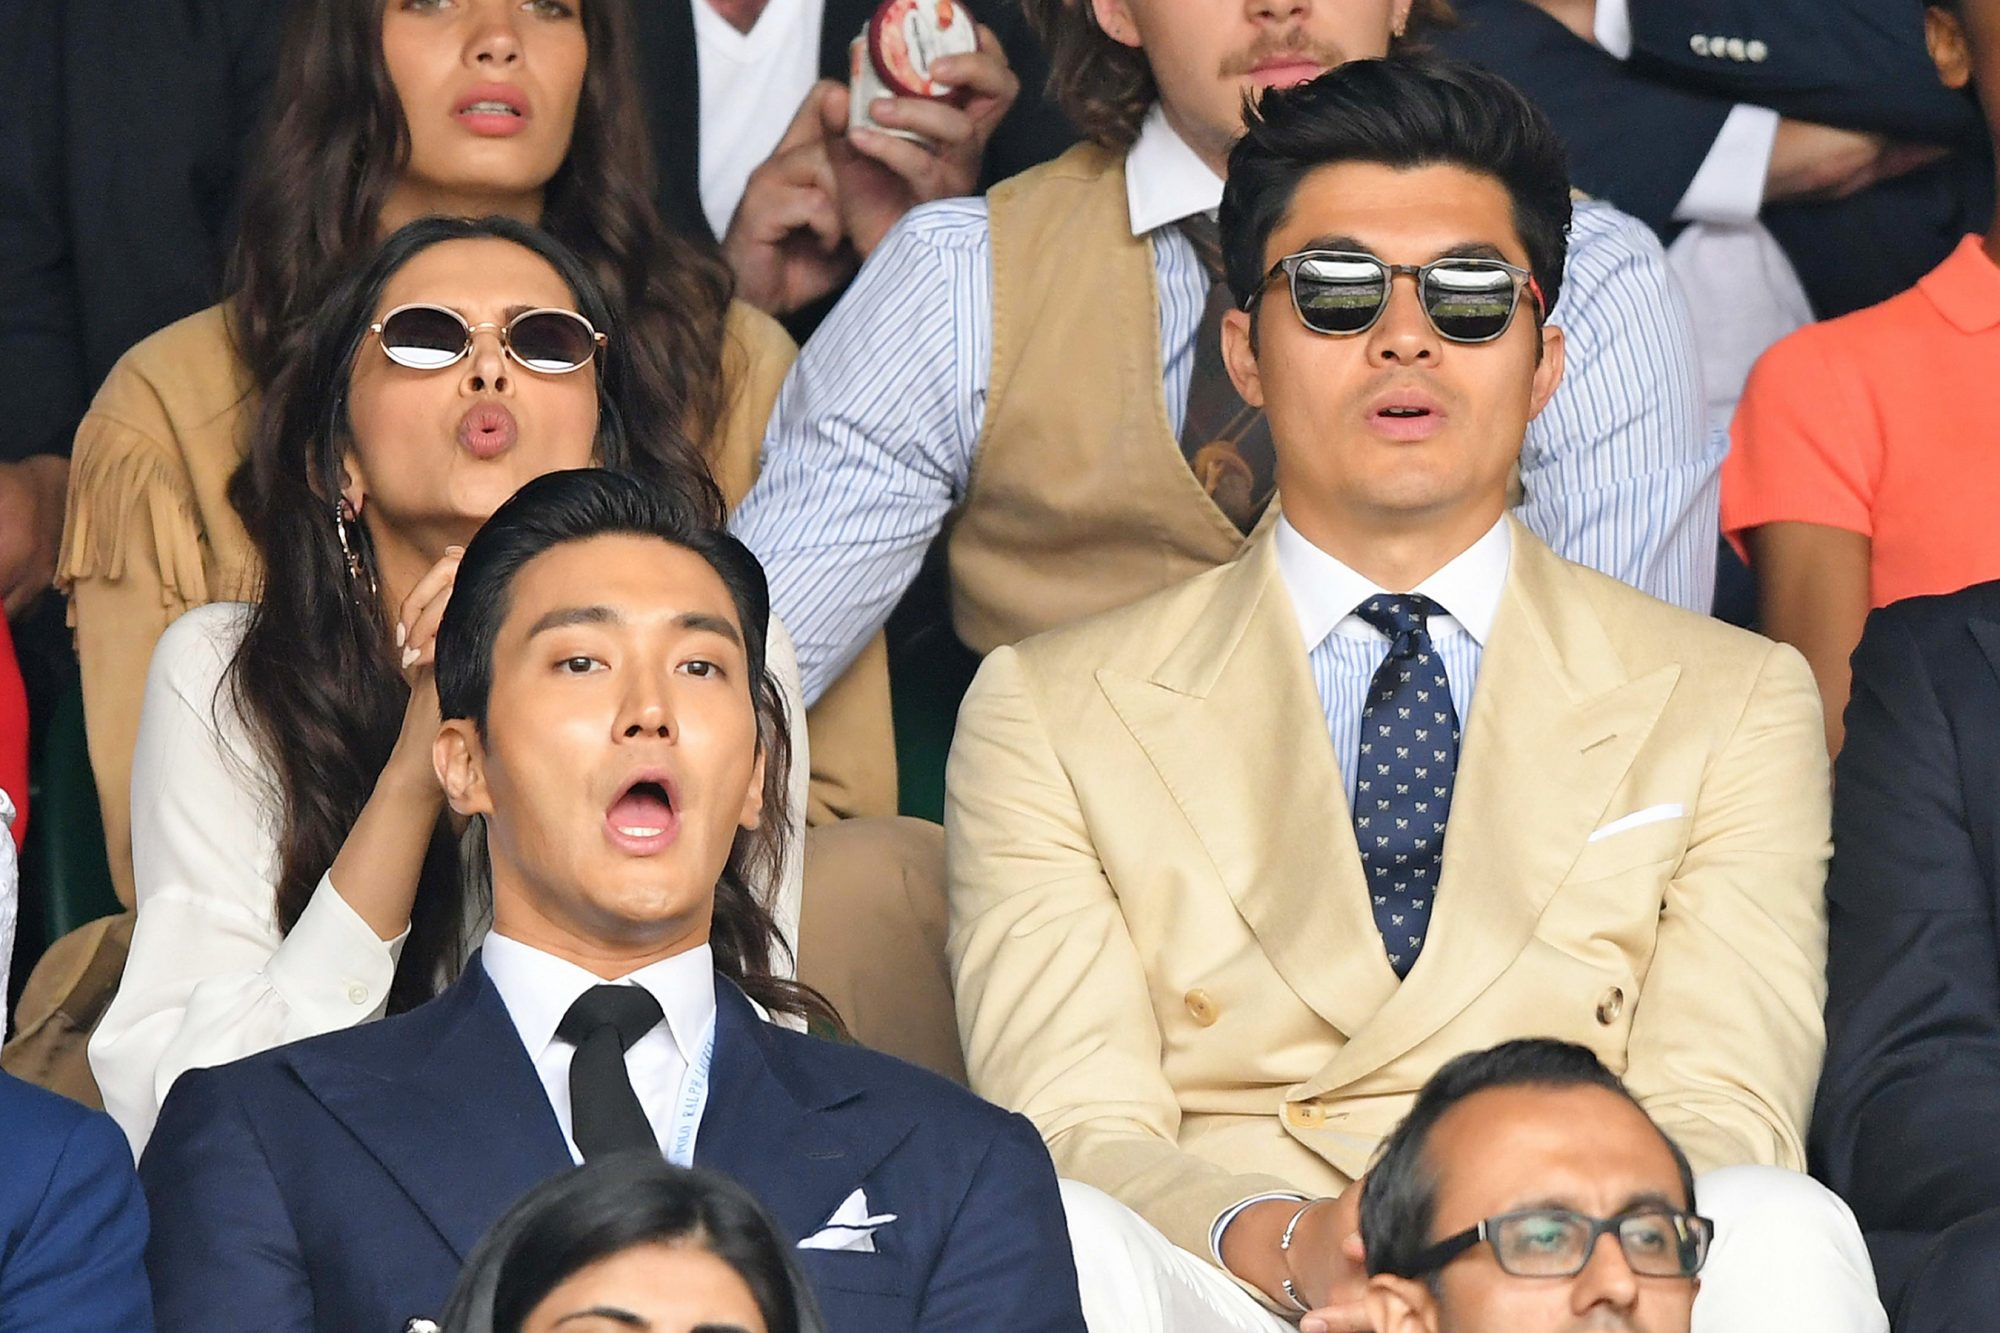 LONDON, ENGLAND - JULY 14: Henry Golding attends Men's Finals Day of the Wimbledon Tennis Championships at All England Lawn Tennis and Croquet Club on July 14, 2019 in London, England. (Photo by Karwai Tang/Getty Images) (Photo by Karwai Tang/Getty Images)